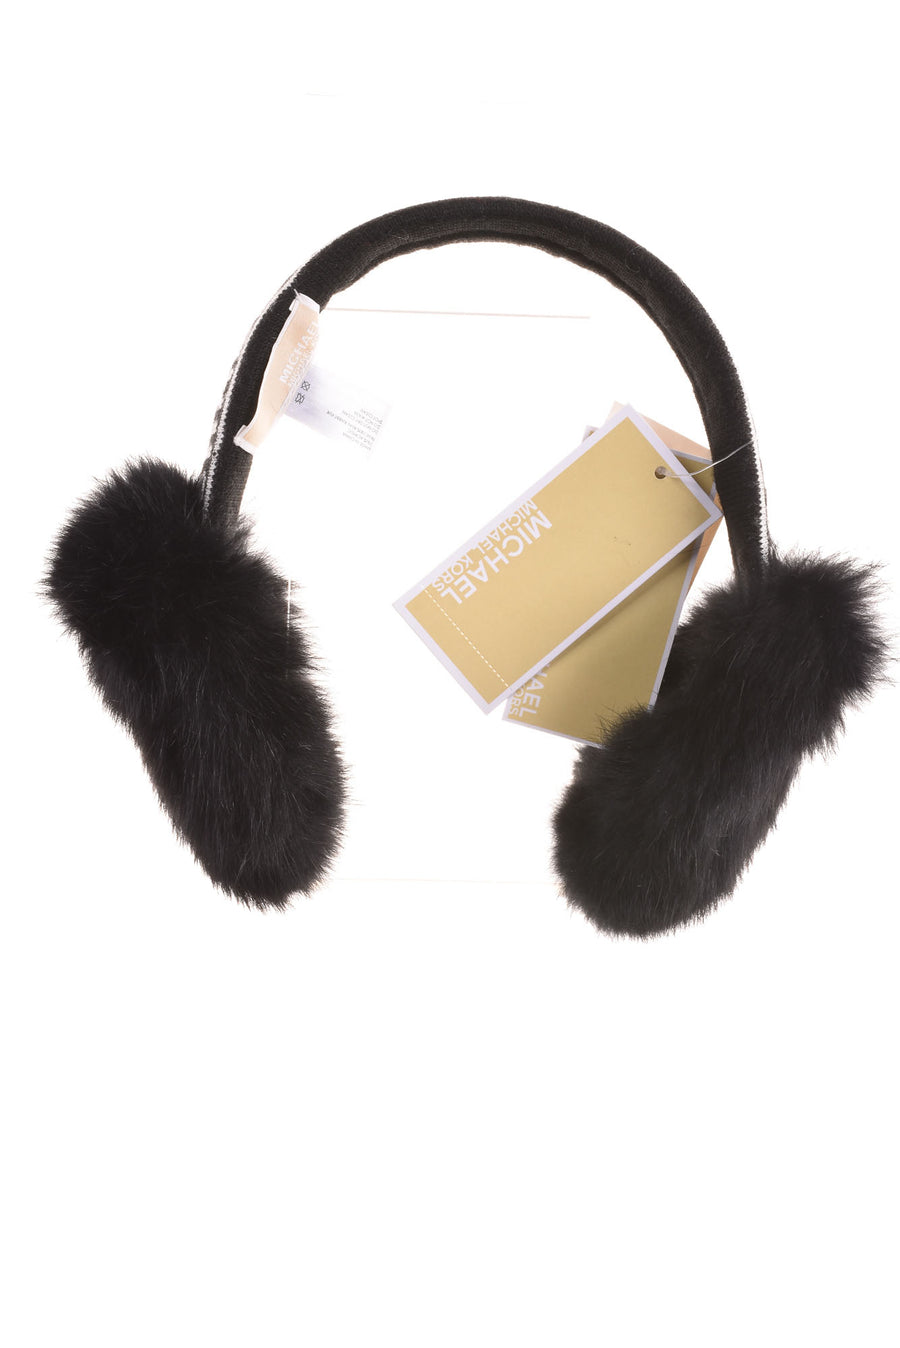 Women's Earmuffs By Michael Kors